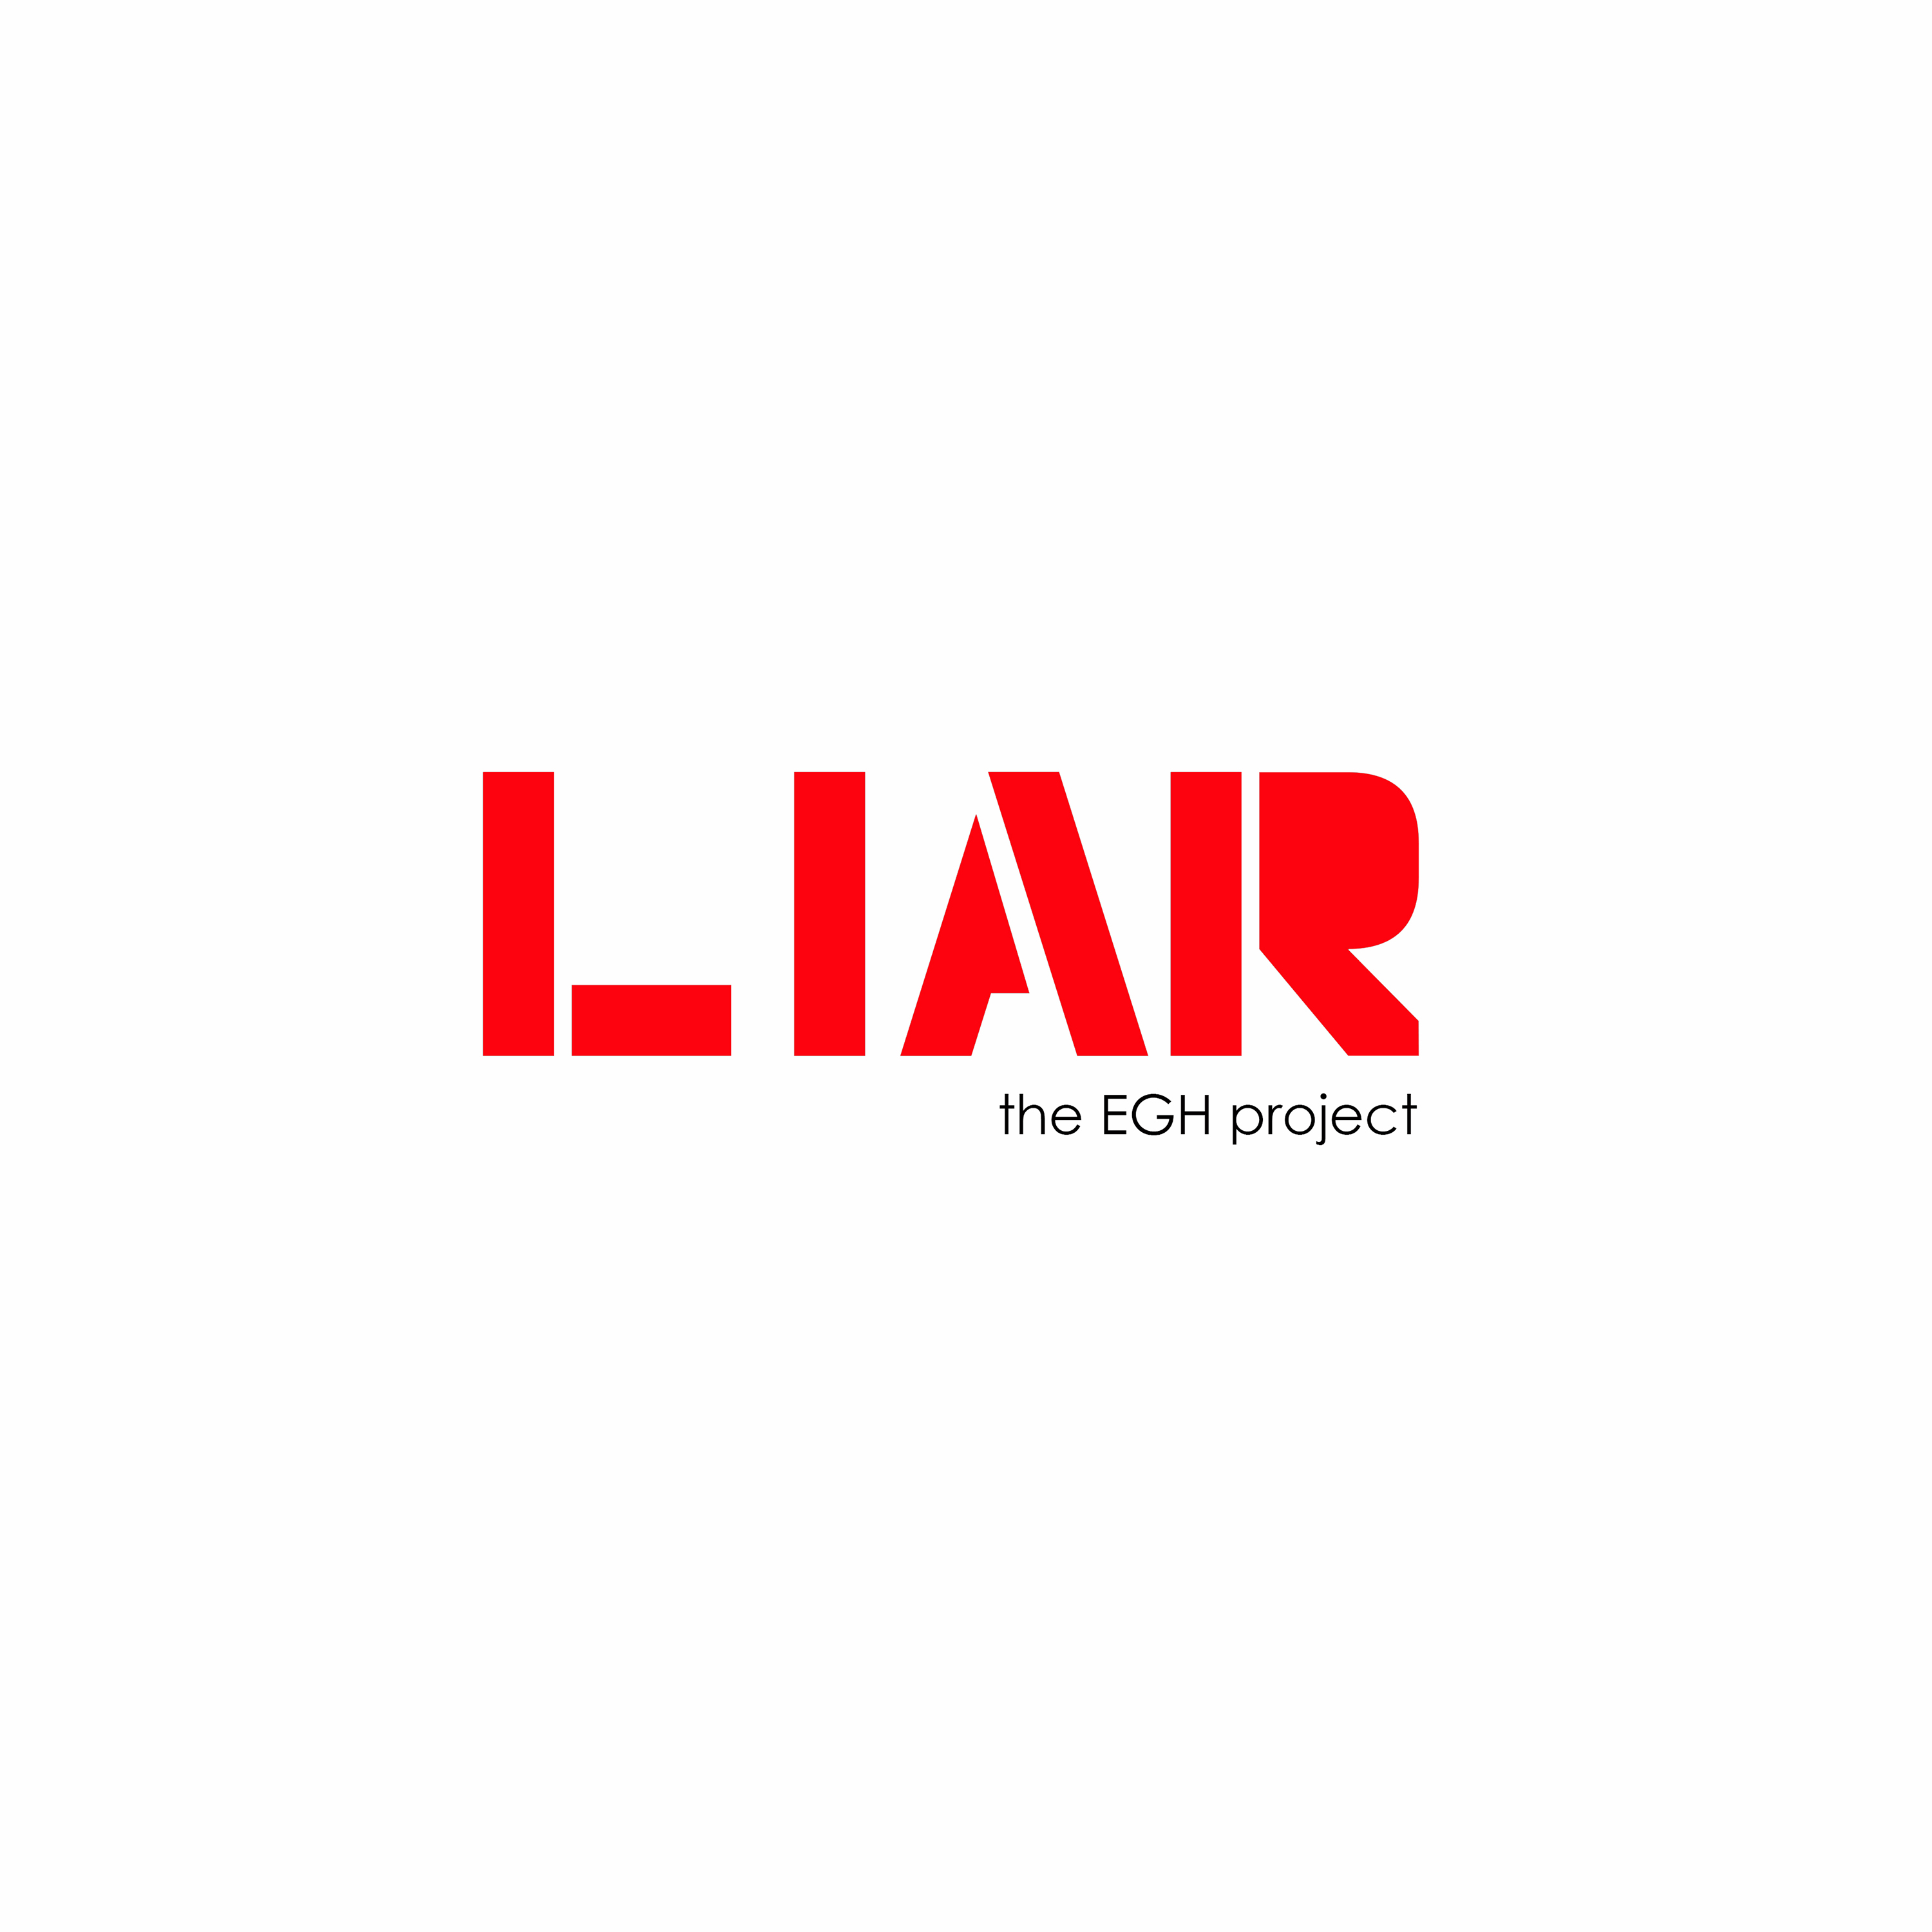 liar cover one